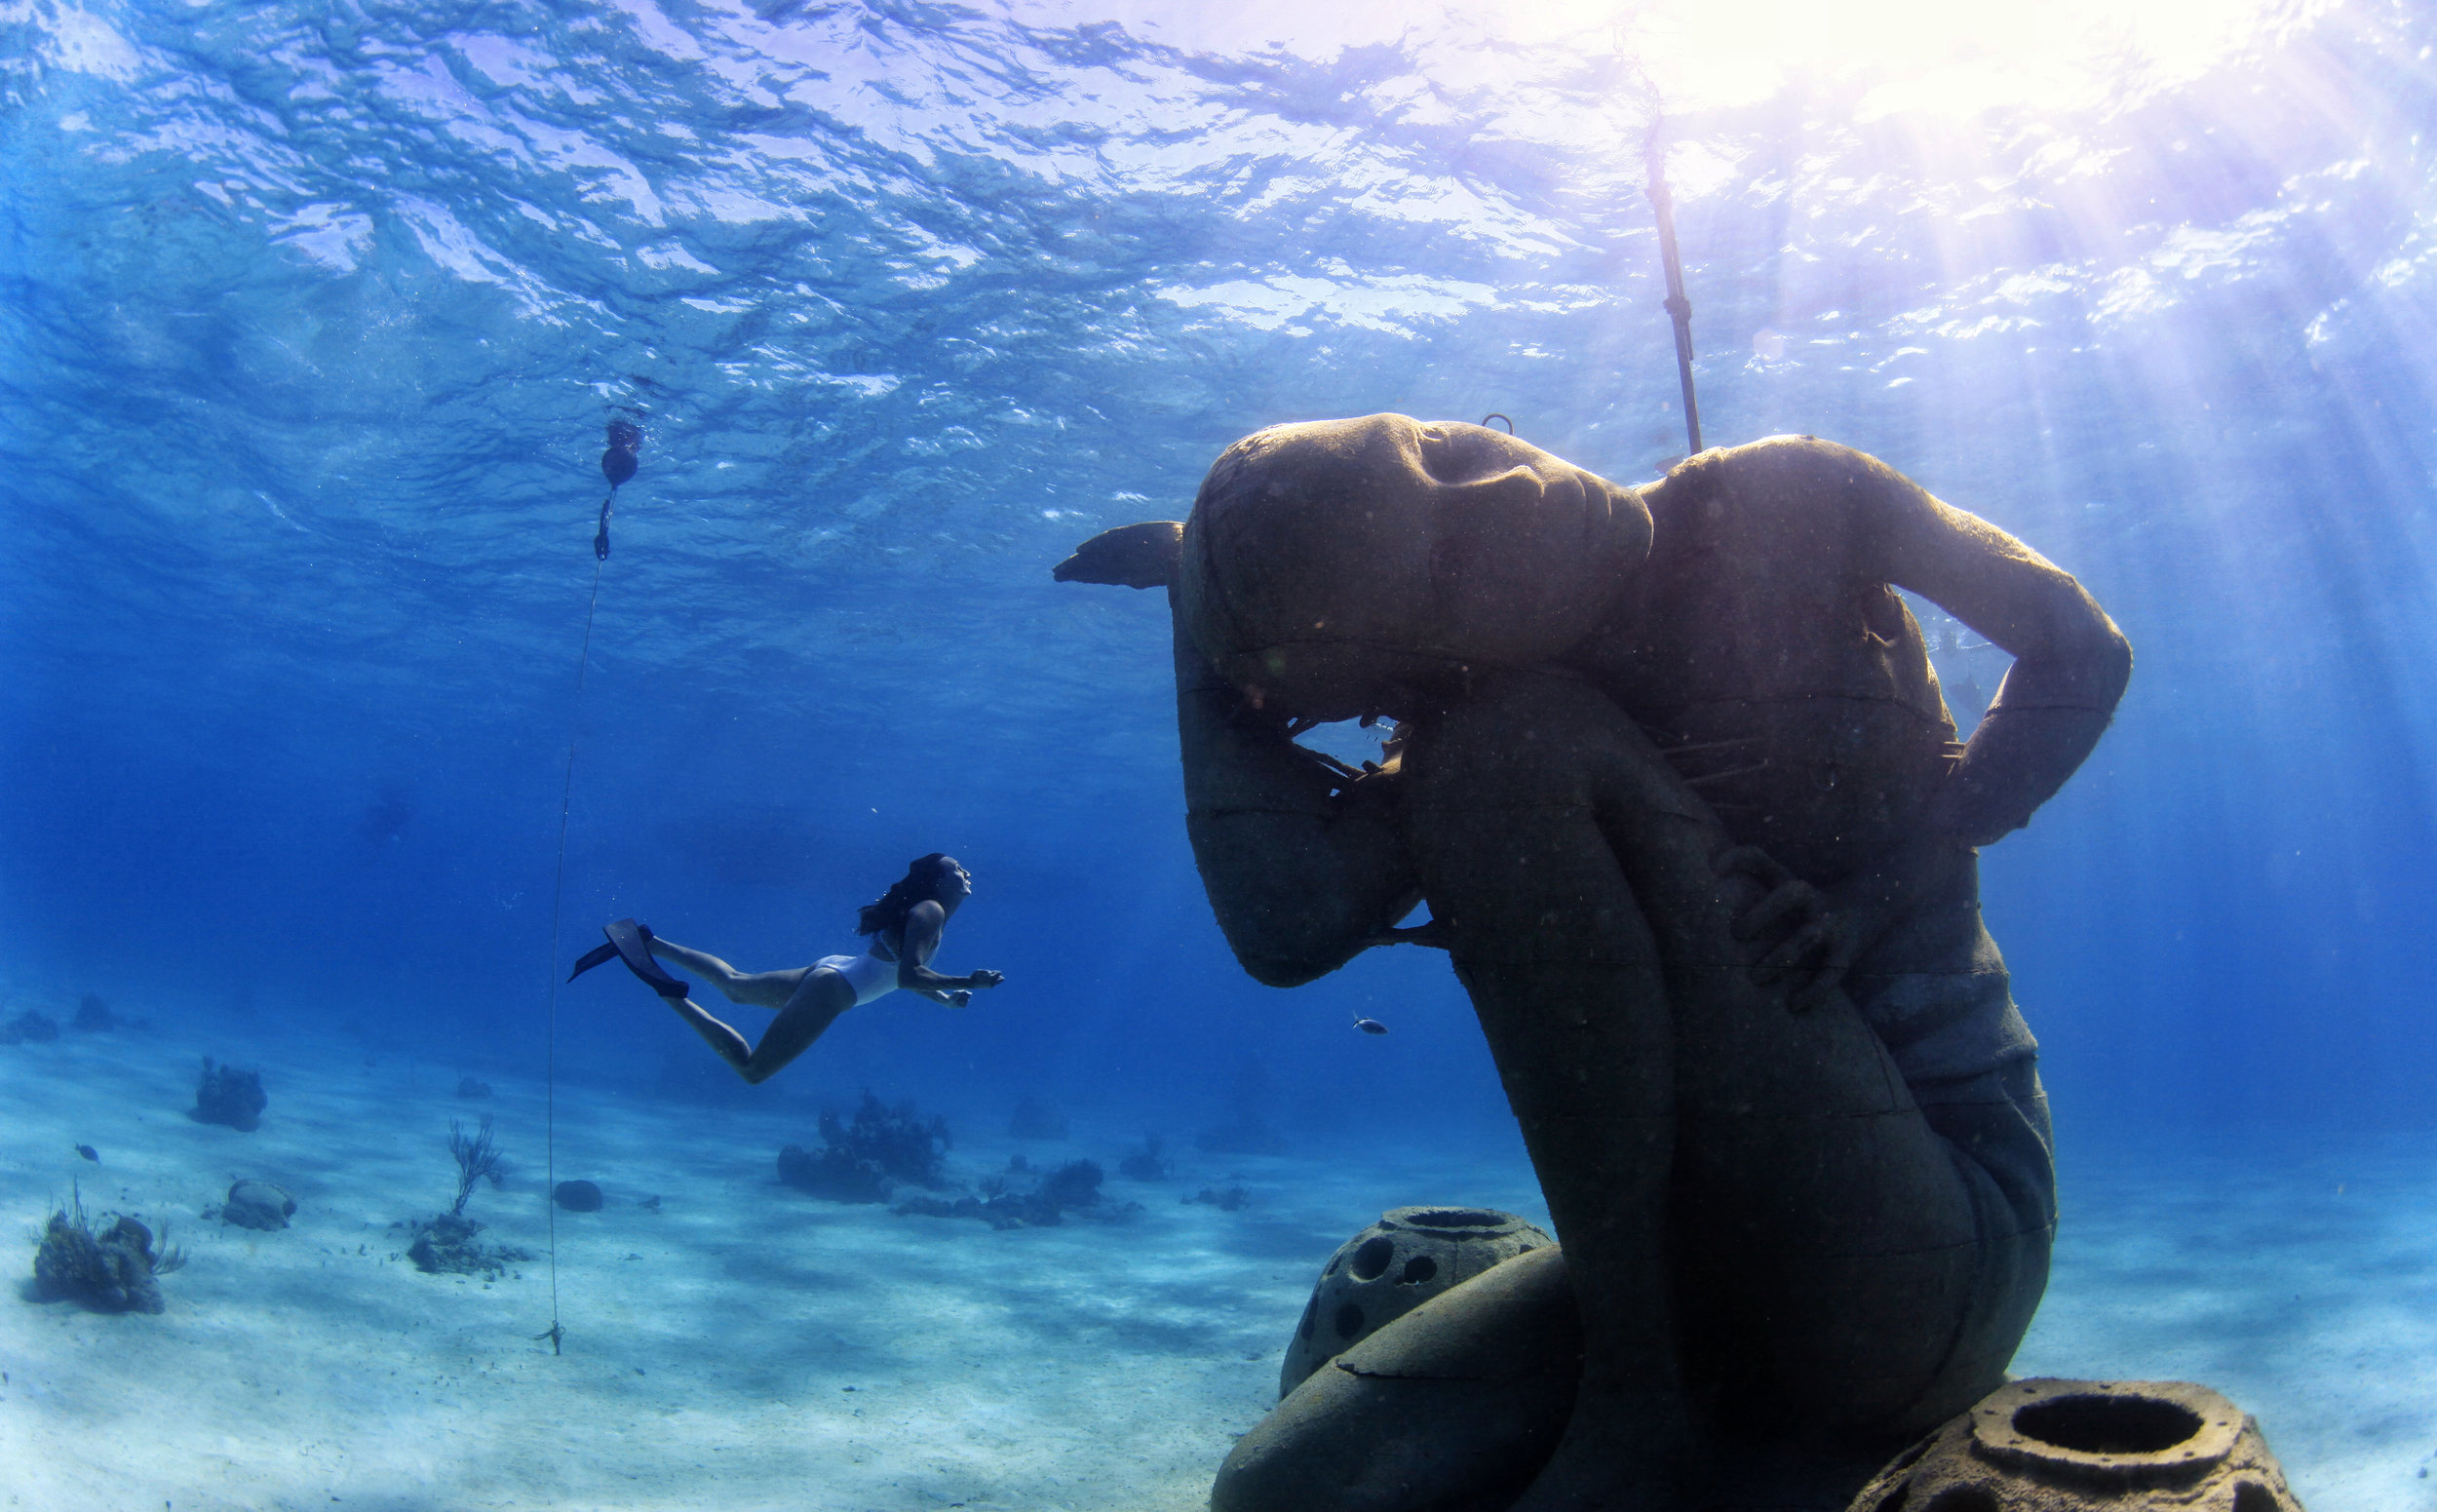 scuba-snorkel-bahamas-treasure-padi-stuart-cove's-will-smith-youtube-dive-temperature-bahamas-water-blue-ocean-seas-wetsuit-goggles-fins-tank-regulator-shallow-blake-lively-nurse-sharks-underwater